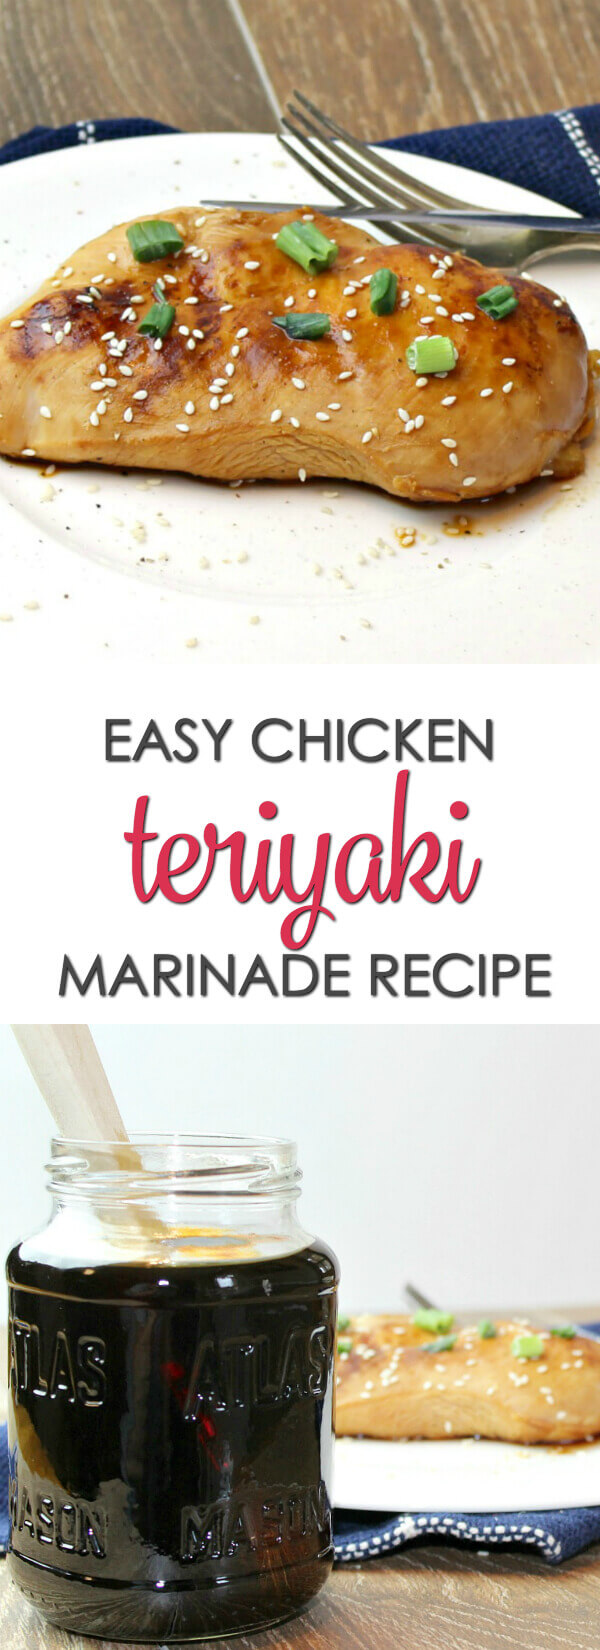 Chicken Teriyaki Marinade Recipe - this easy teriyaki sauce marinade recipe packs a ton of flavor